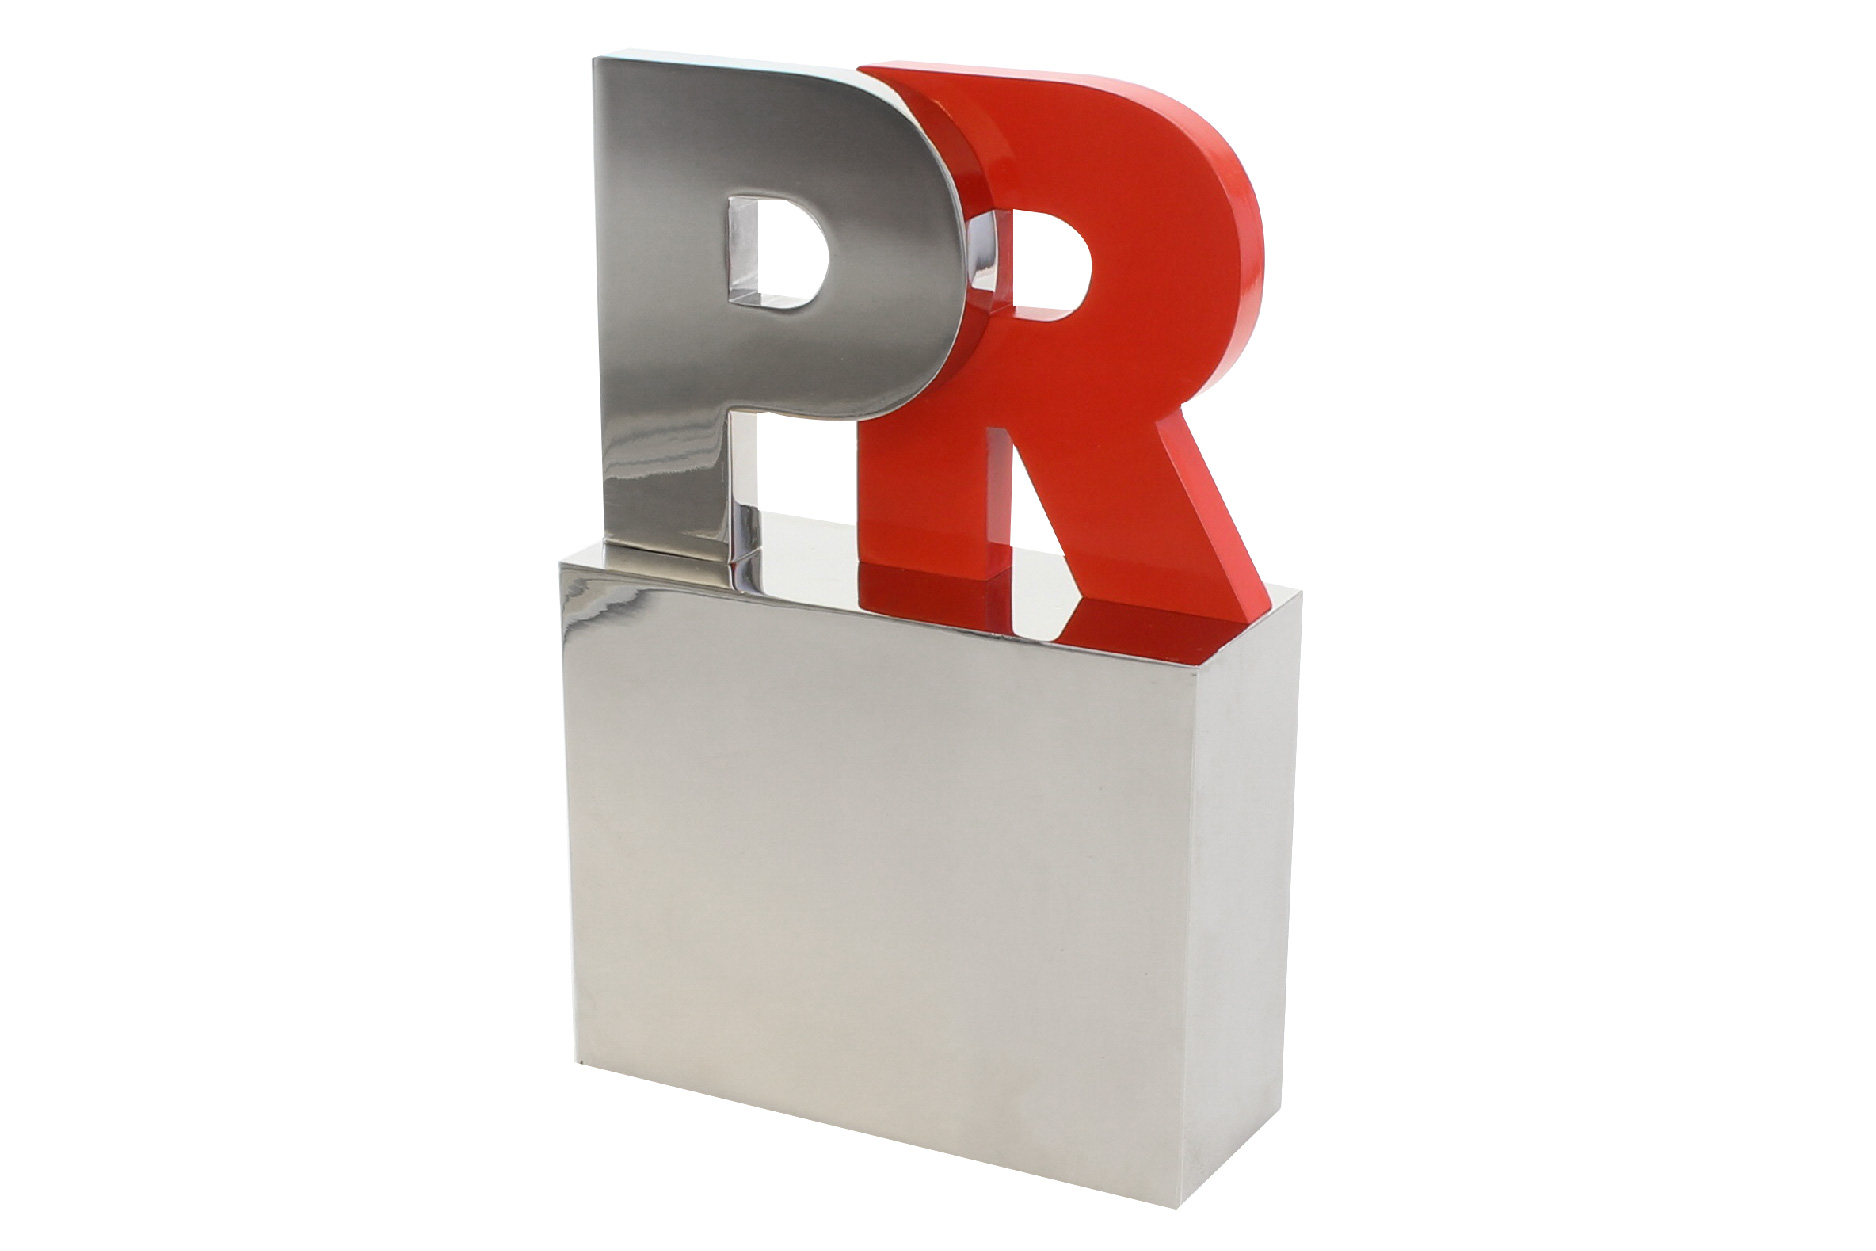 Cut-out metal letters award on aluminum base. Includes high-end enamel detailing.